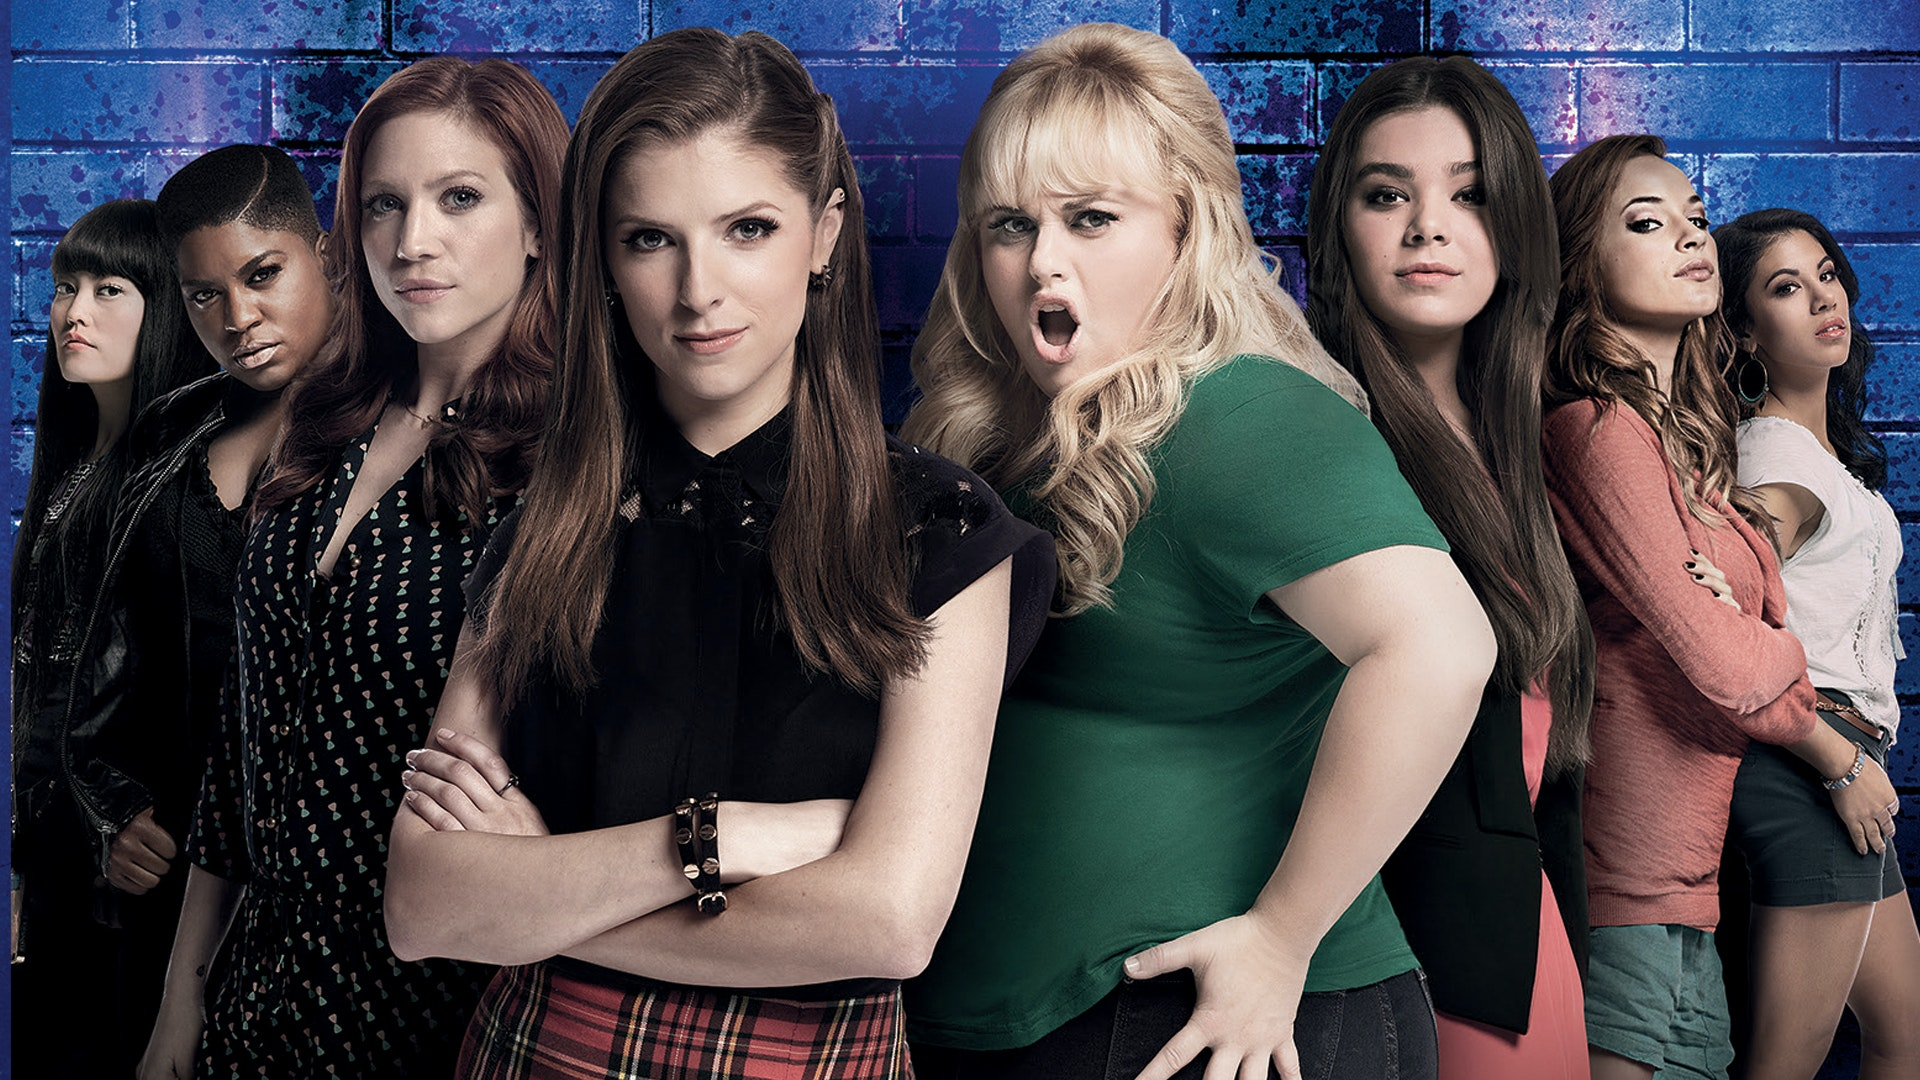 Watch Pitch Perfect 2 Online With Neon